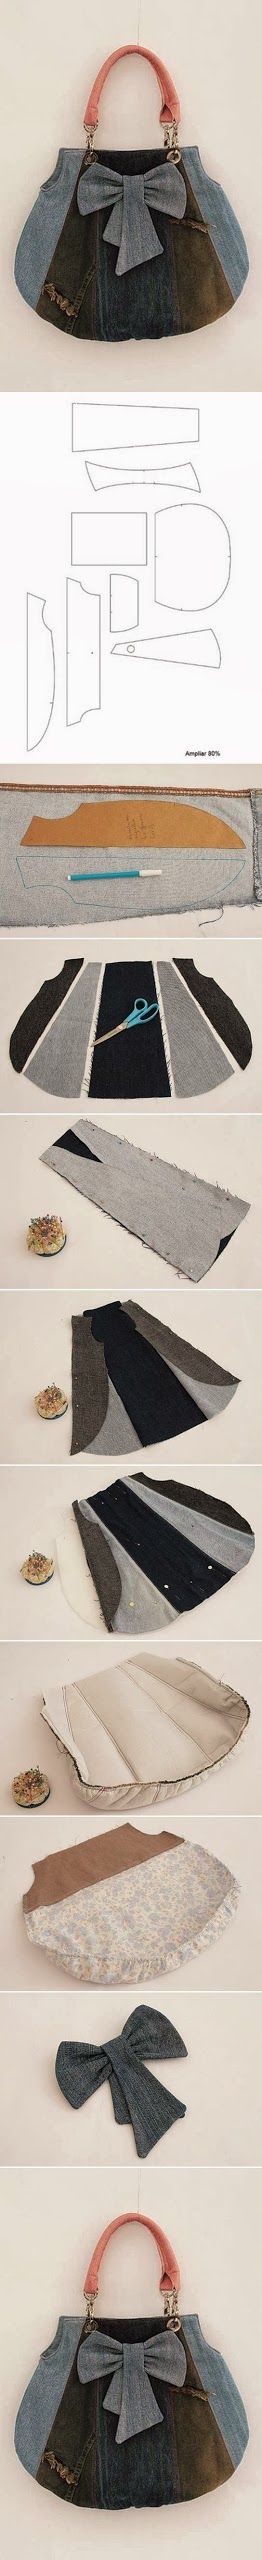 SAC Tailoring | DIY & Crafts Tutorials